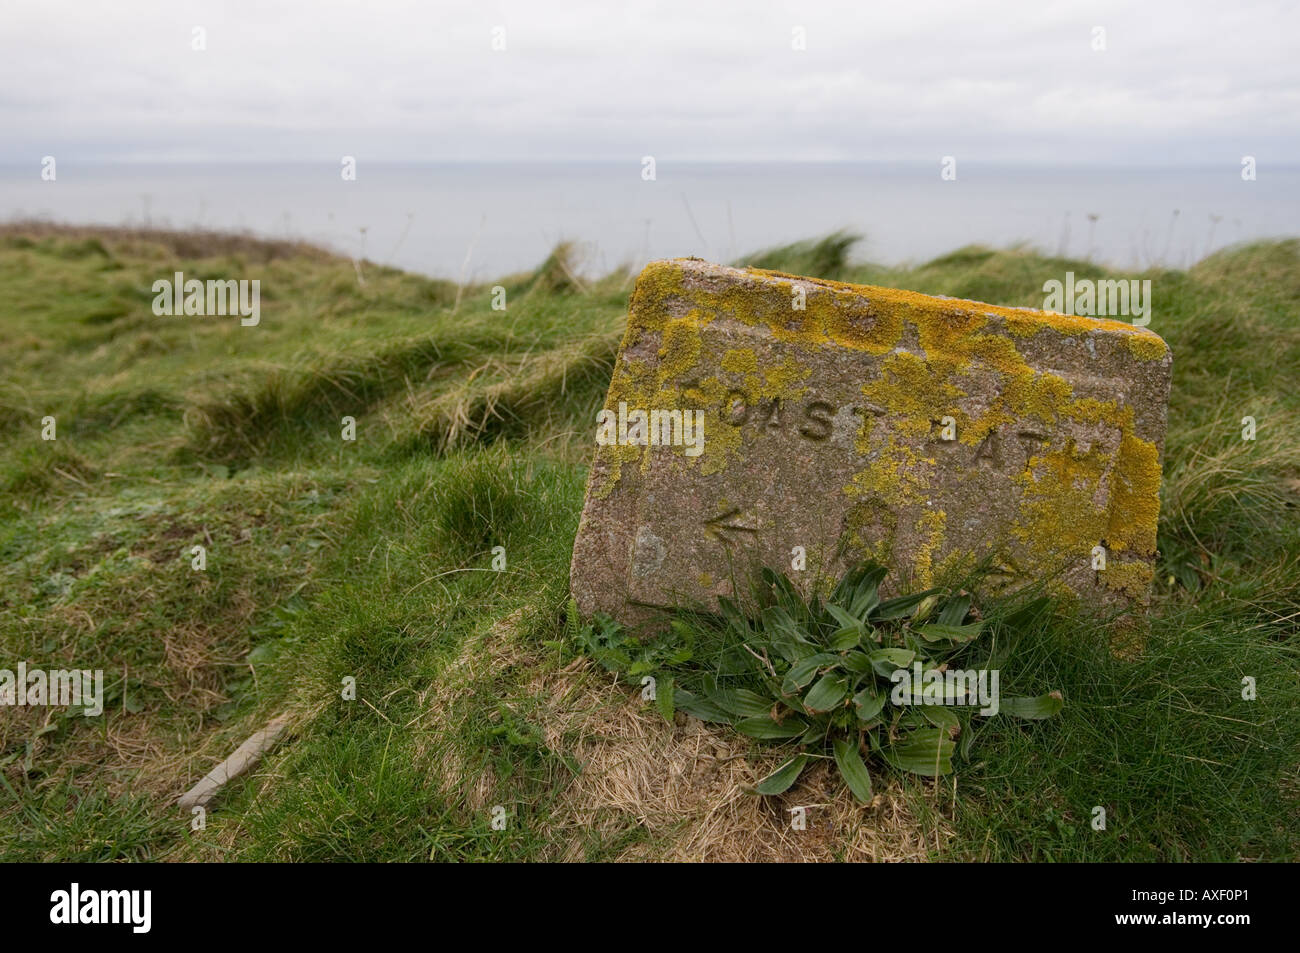 A lichen-covered stone marker showing a coastal path in Penwith, Cornwall, UK - Stock Image